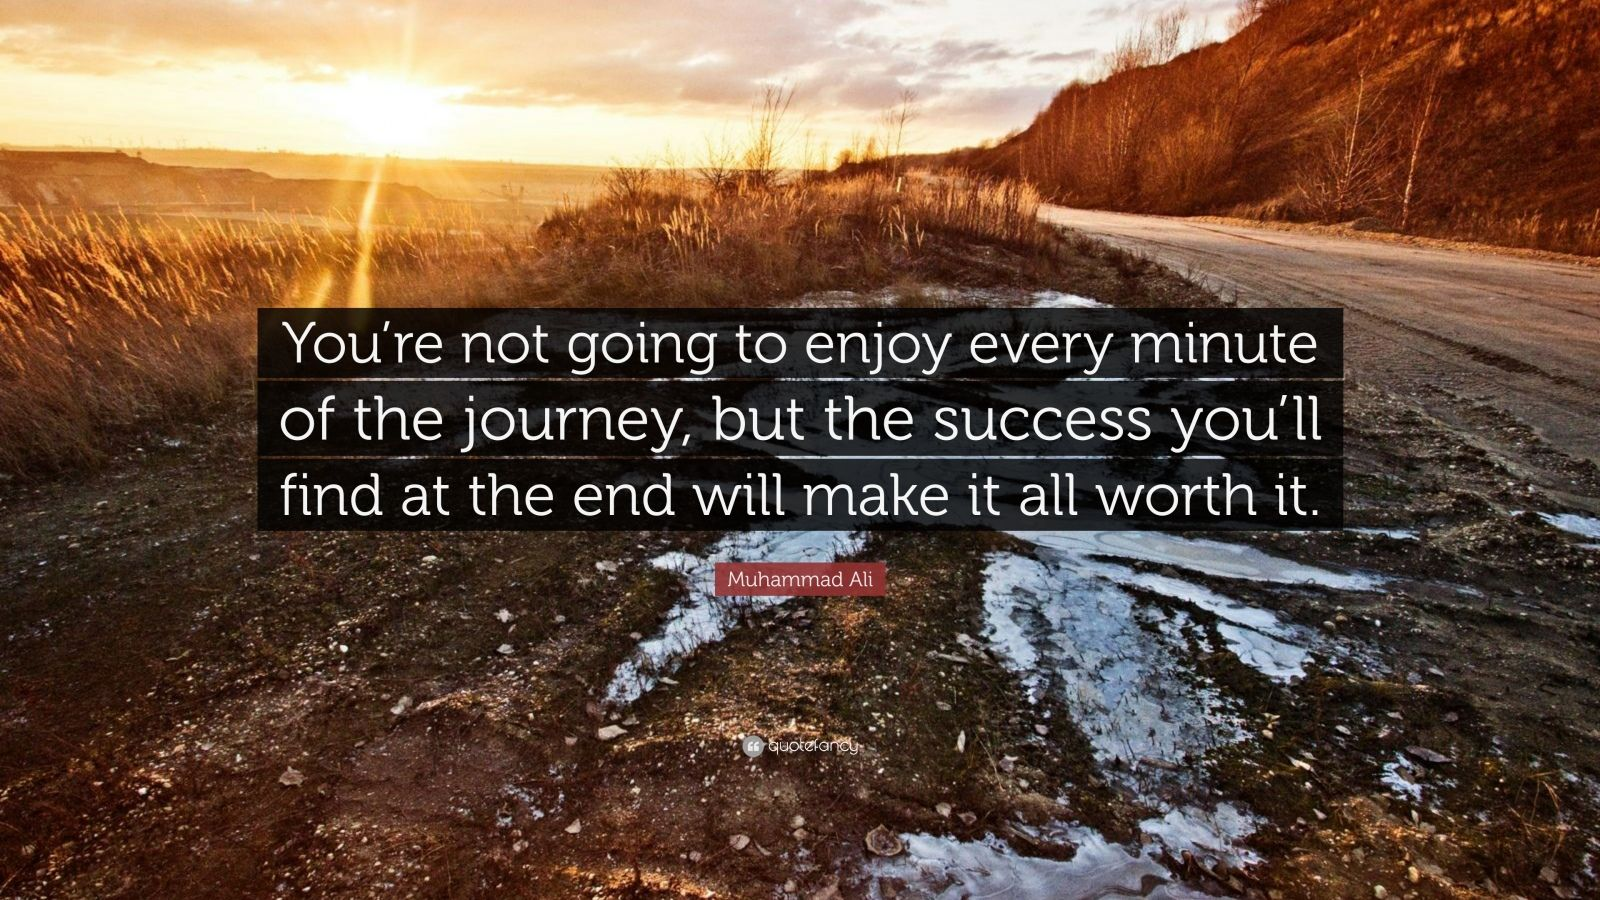 """Muhammad Ali Quote: """"You're not going to enjoy every minute of the journey, but the success you'll find at the end will make it all worth it."""""""